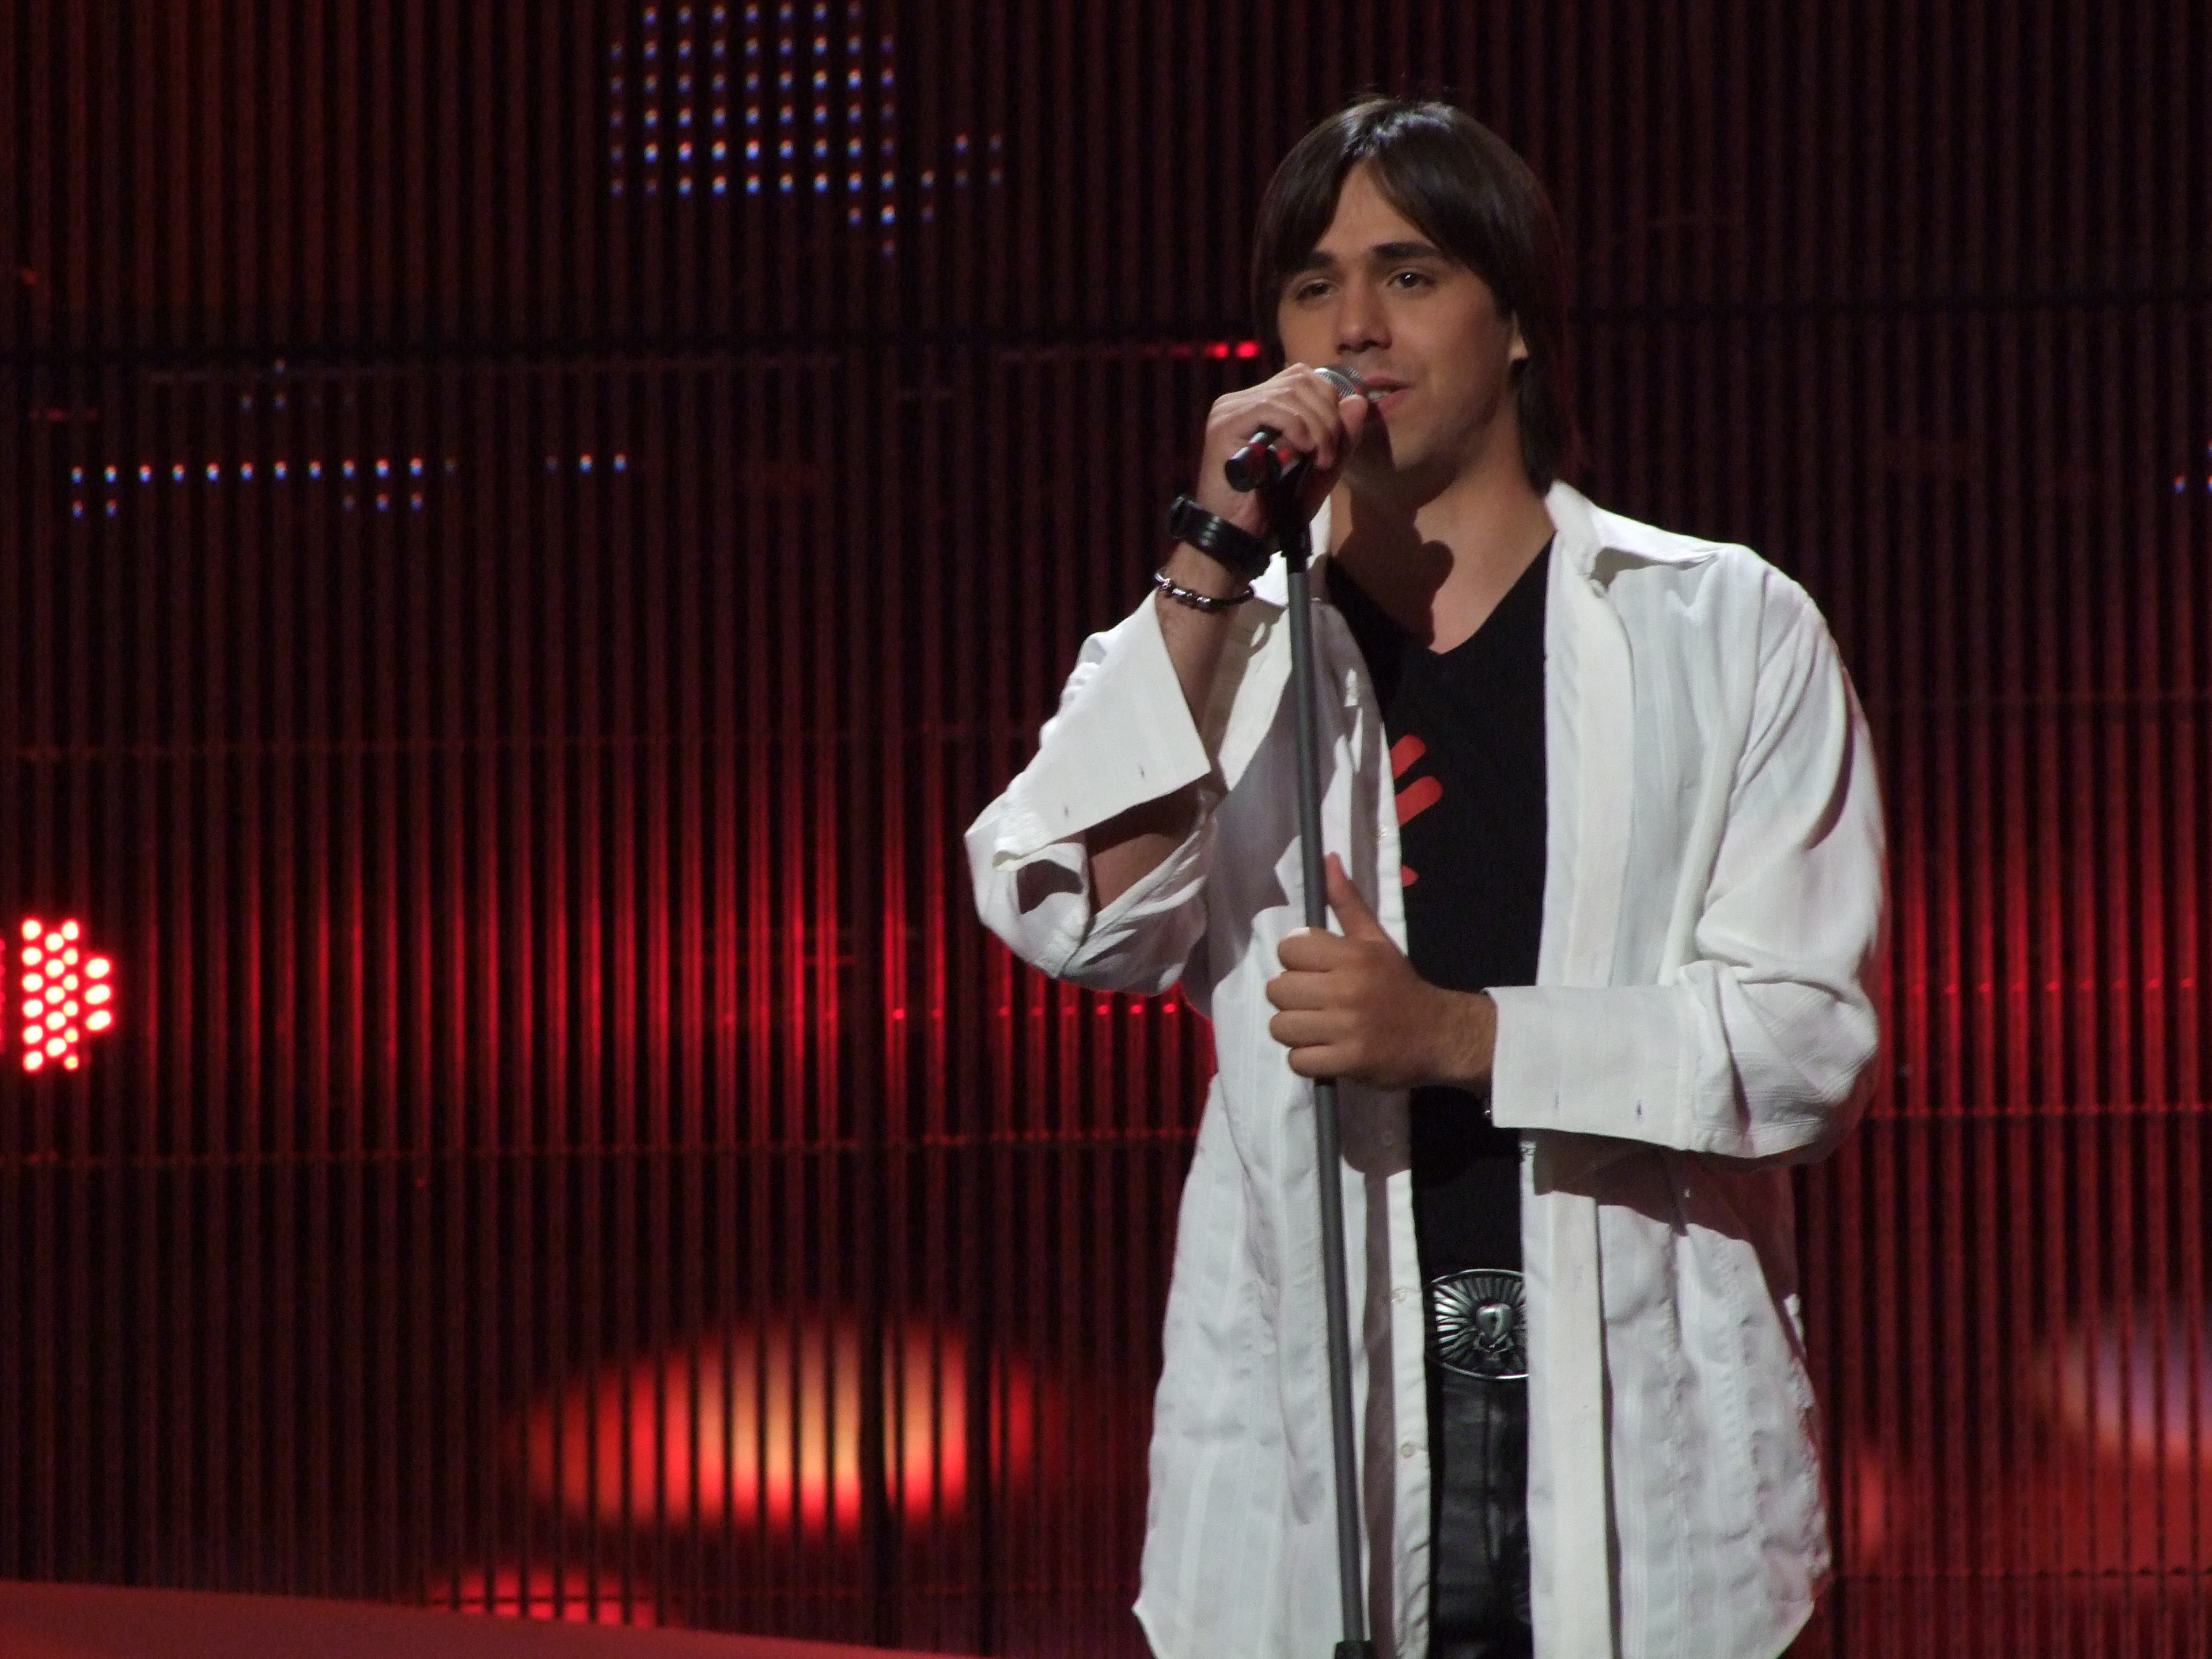 File:Flickr - proteusbcn - Semifinal 1 EUROVISION 2008 (69